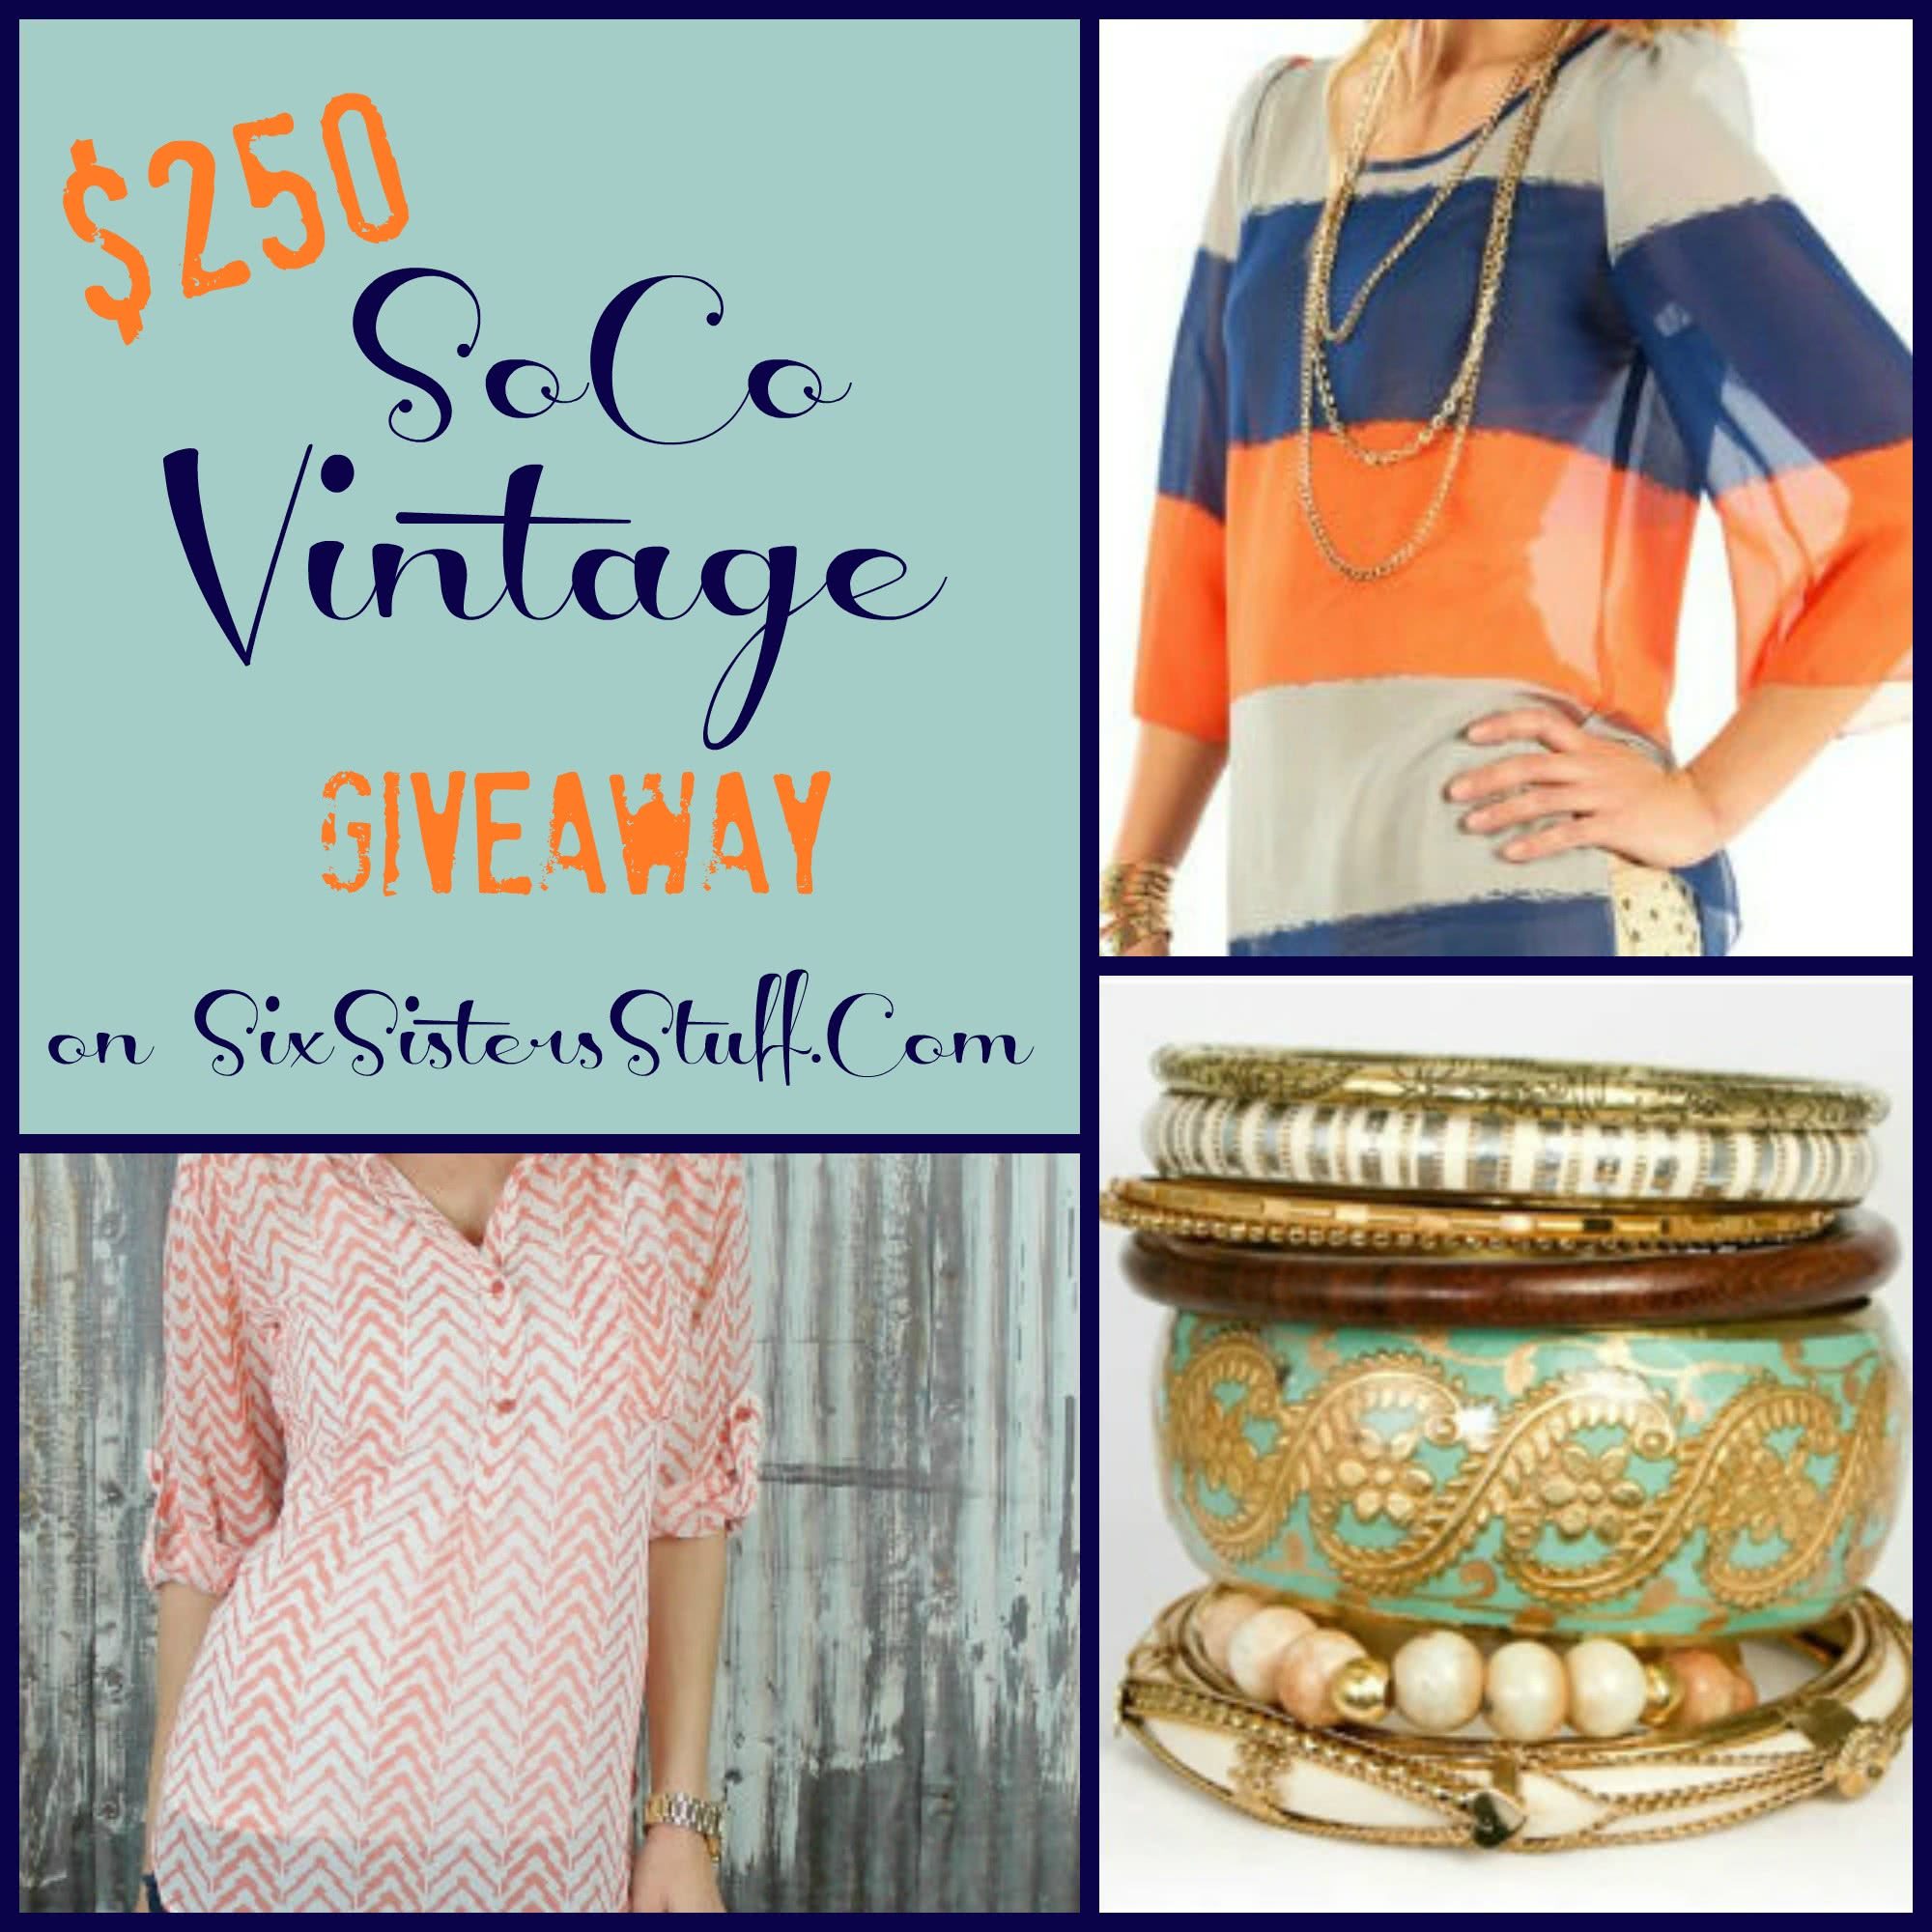 SoCo Vintage collage 2